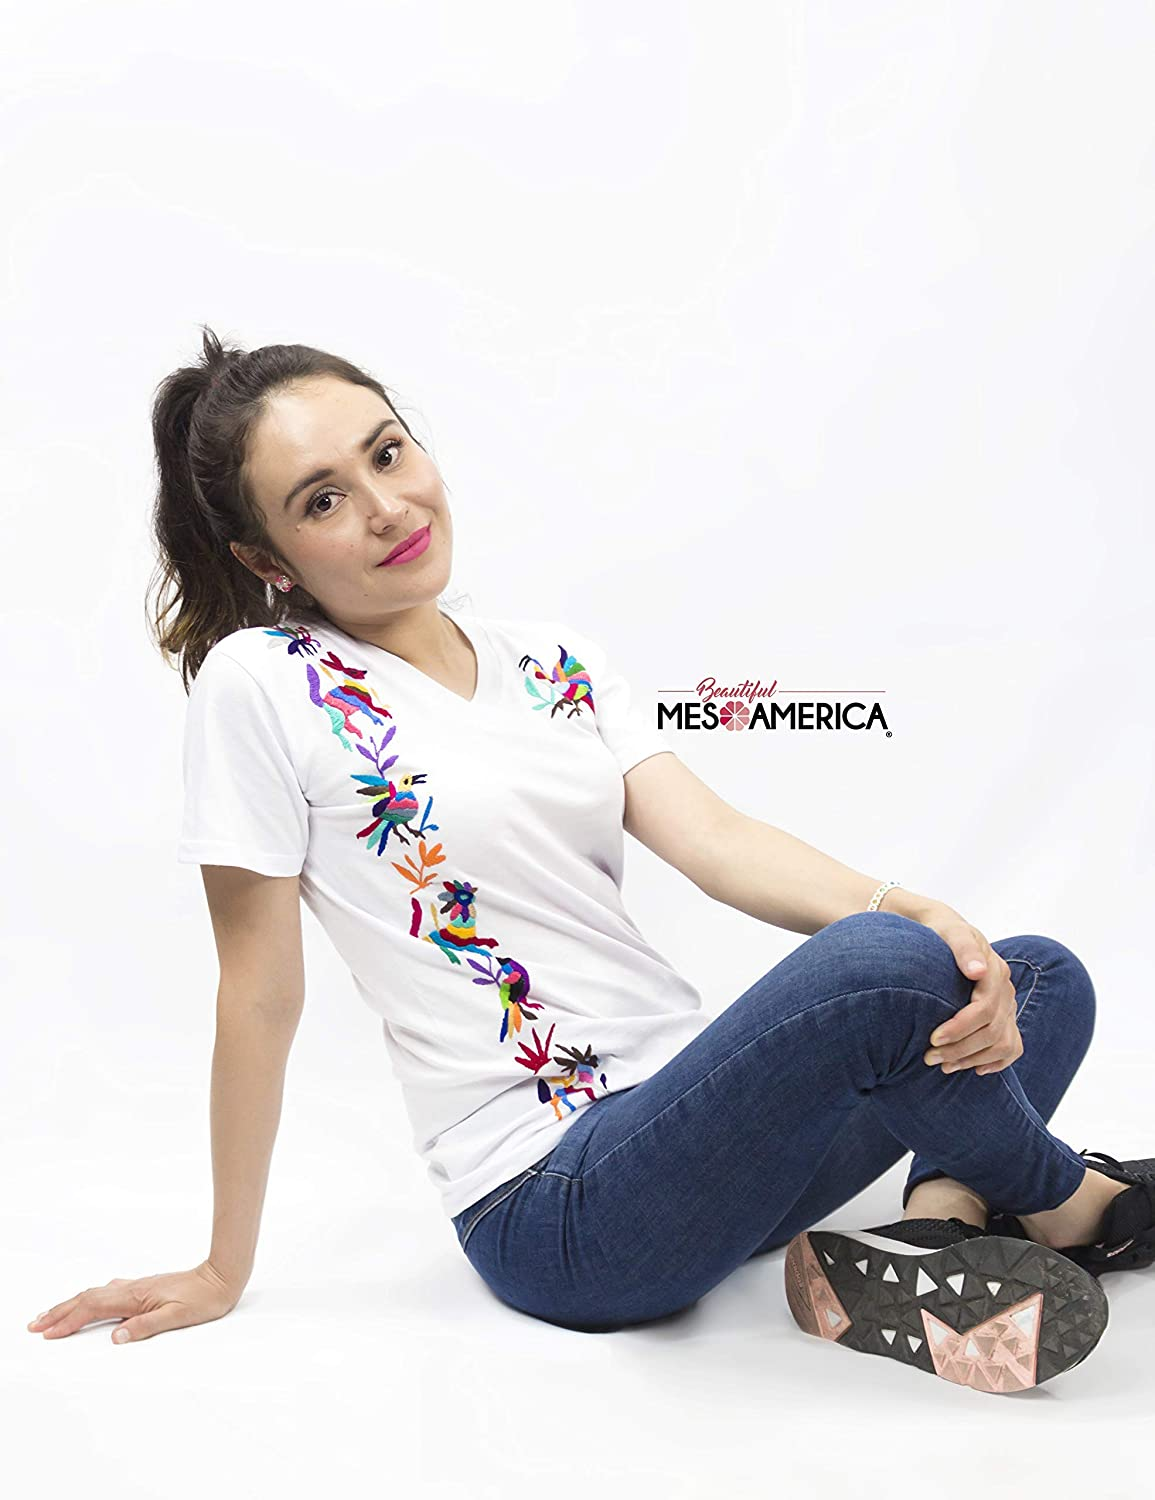 Handmade Mexican T-Shirt Tanok Mujer Hand Embroidered Mexican T-Shirt